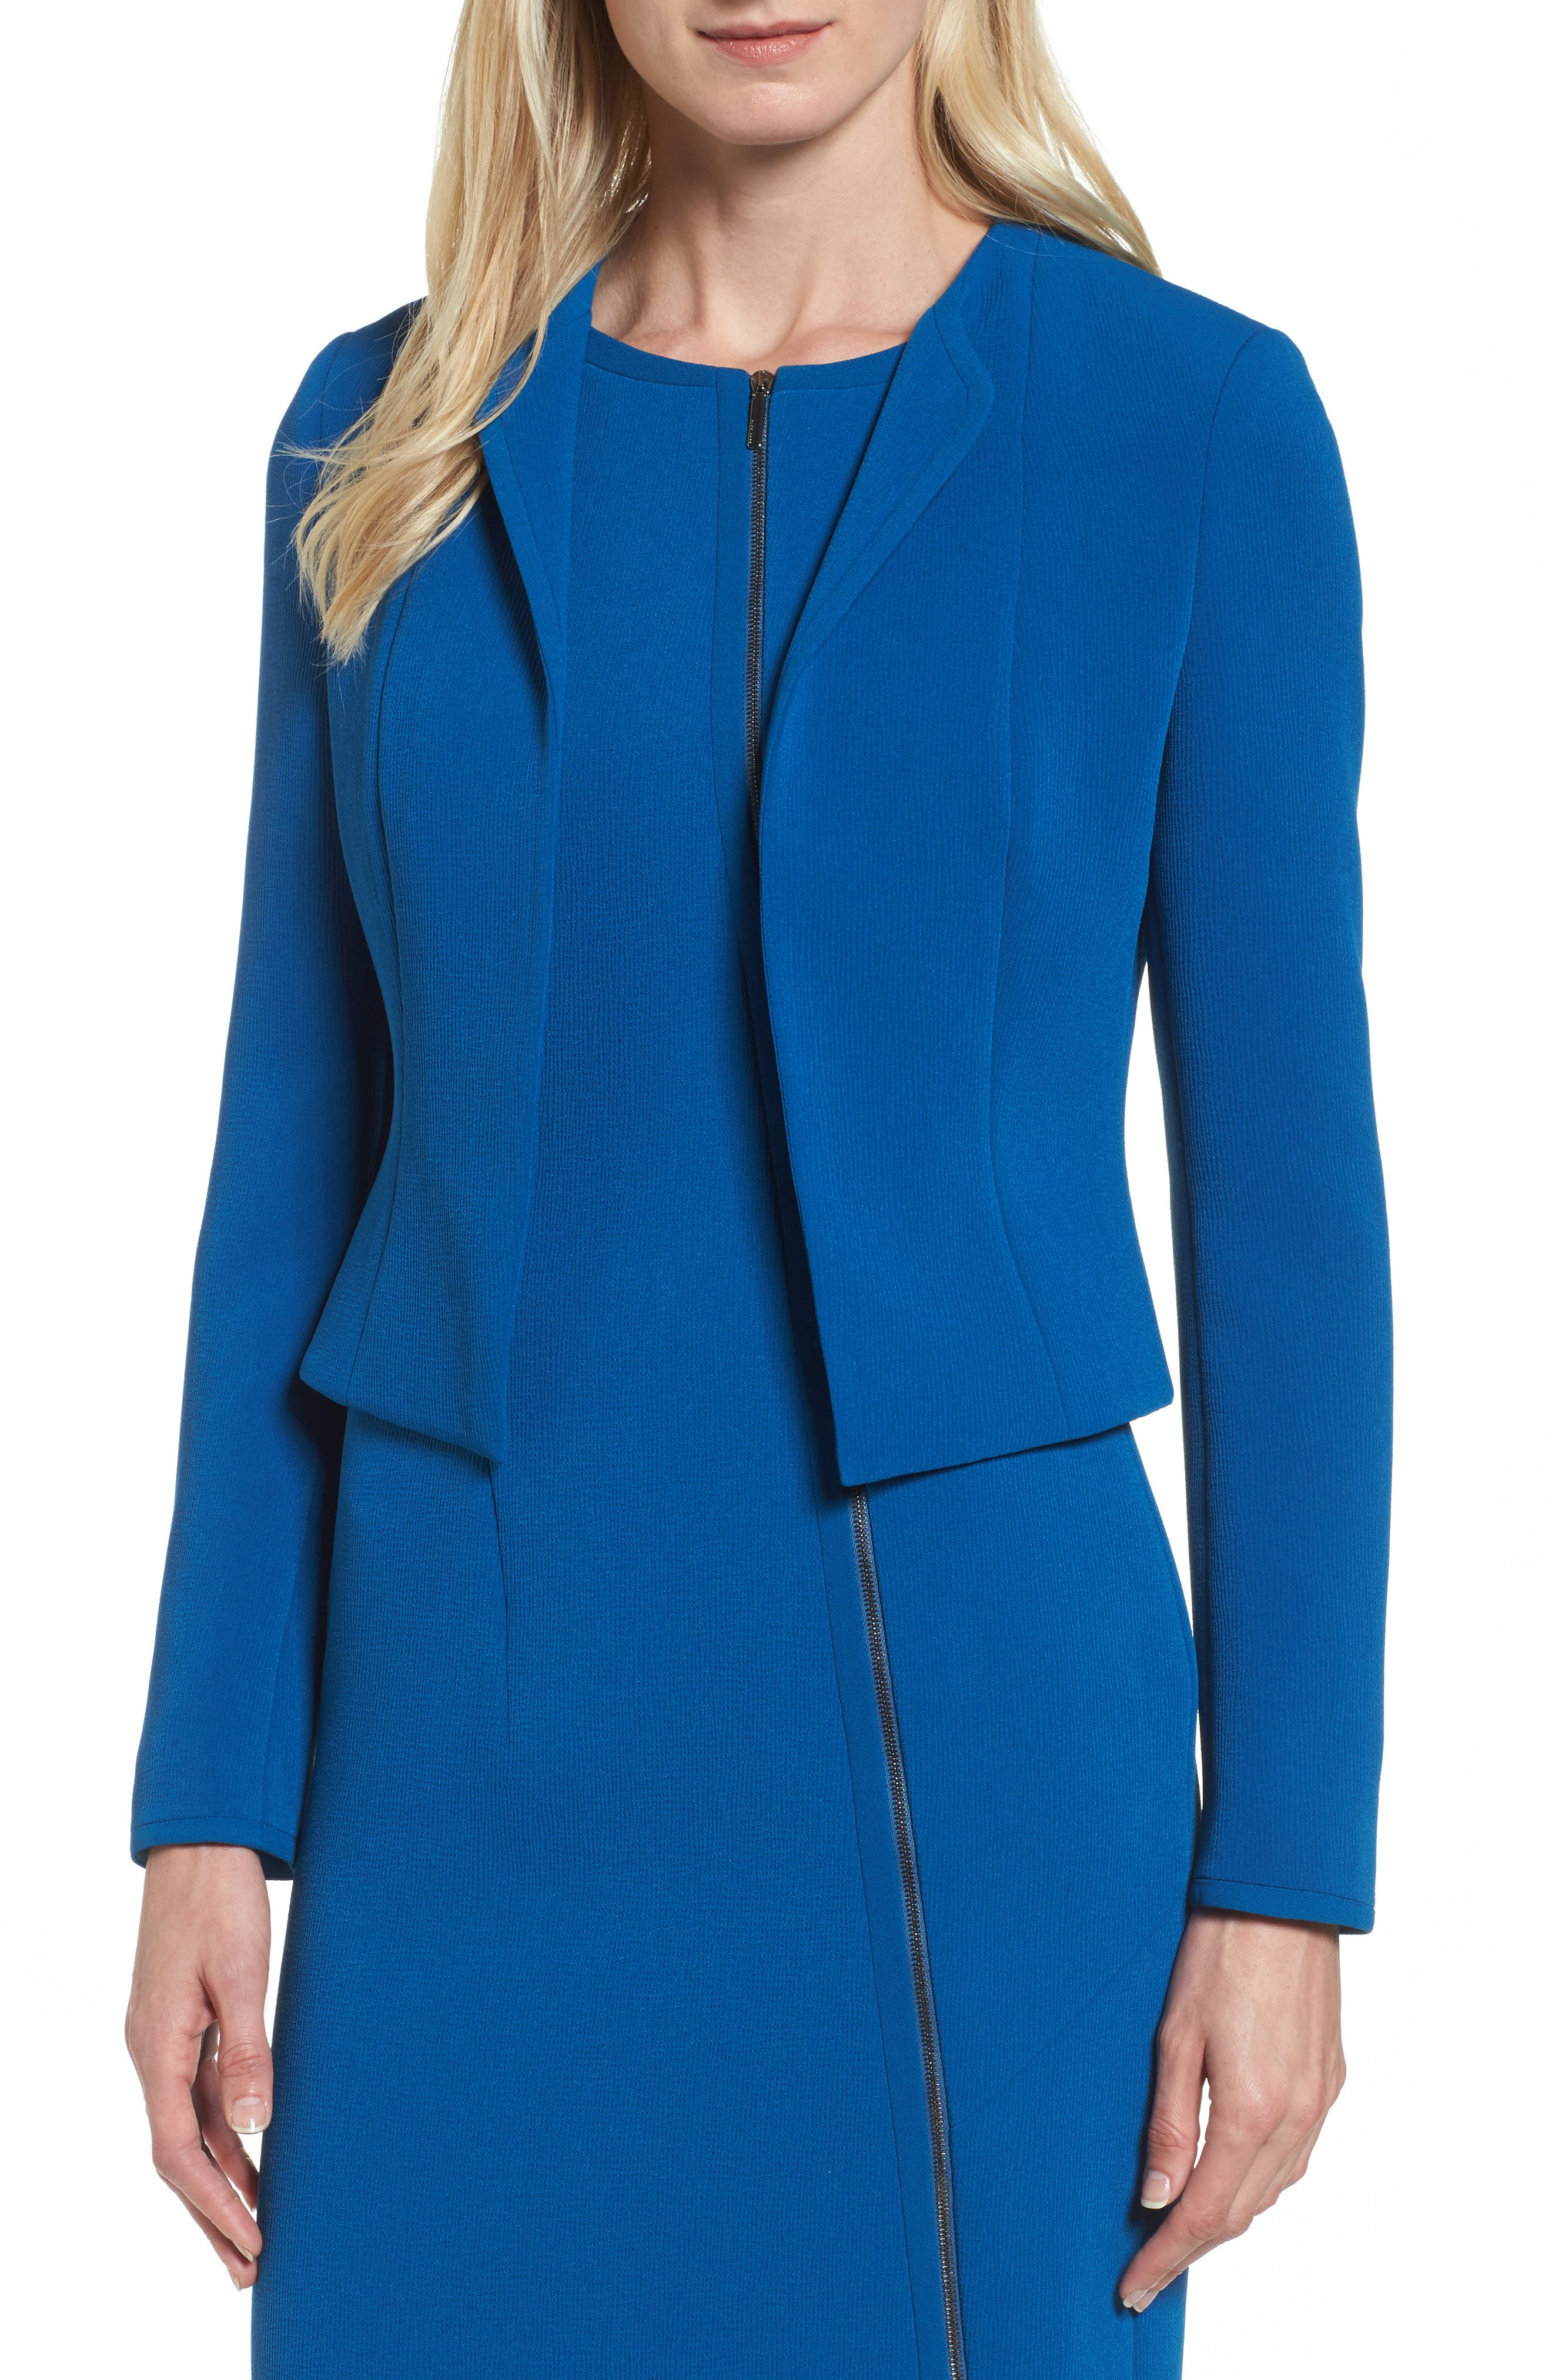 BOSS Jerusa Crop Suit Jacket (Petite) (Nordstrom Exclusive)